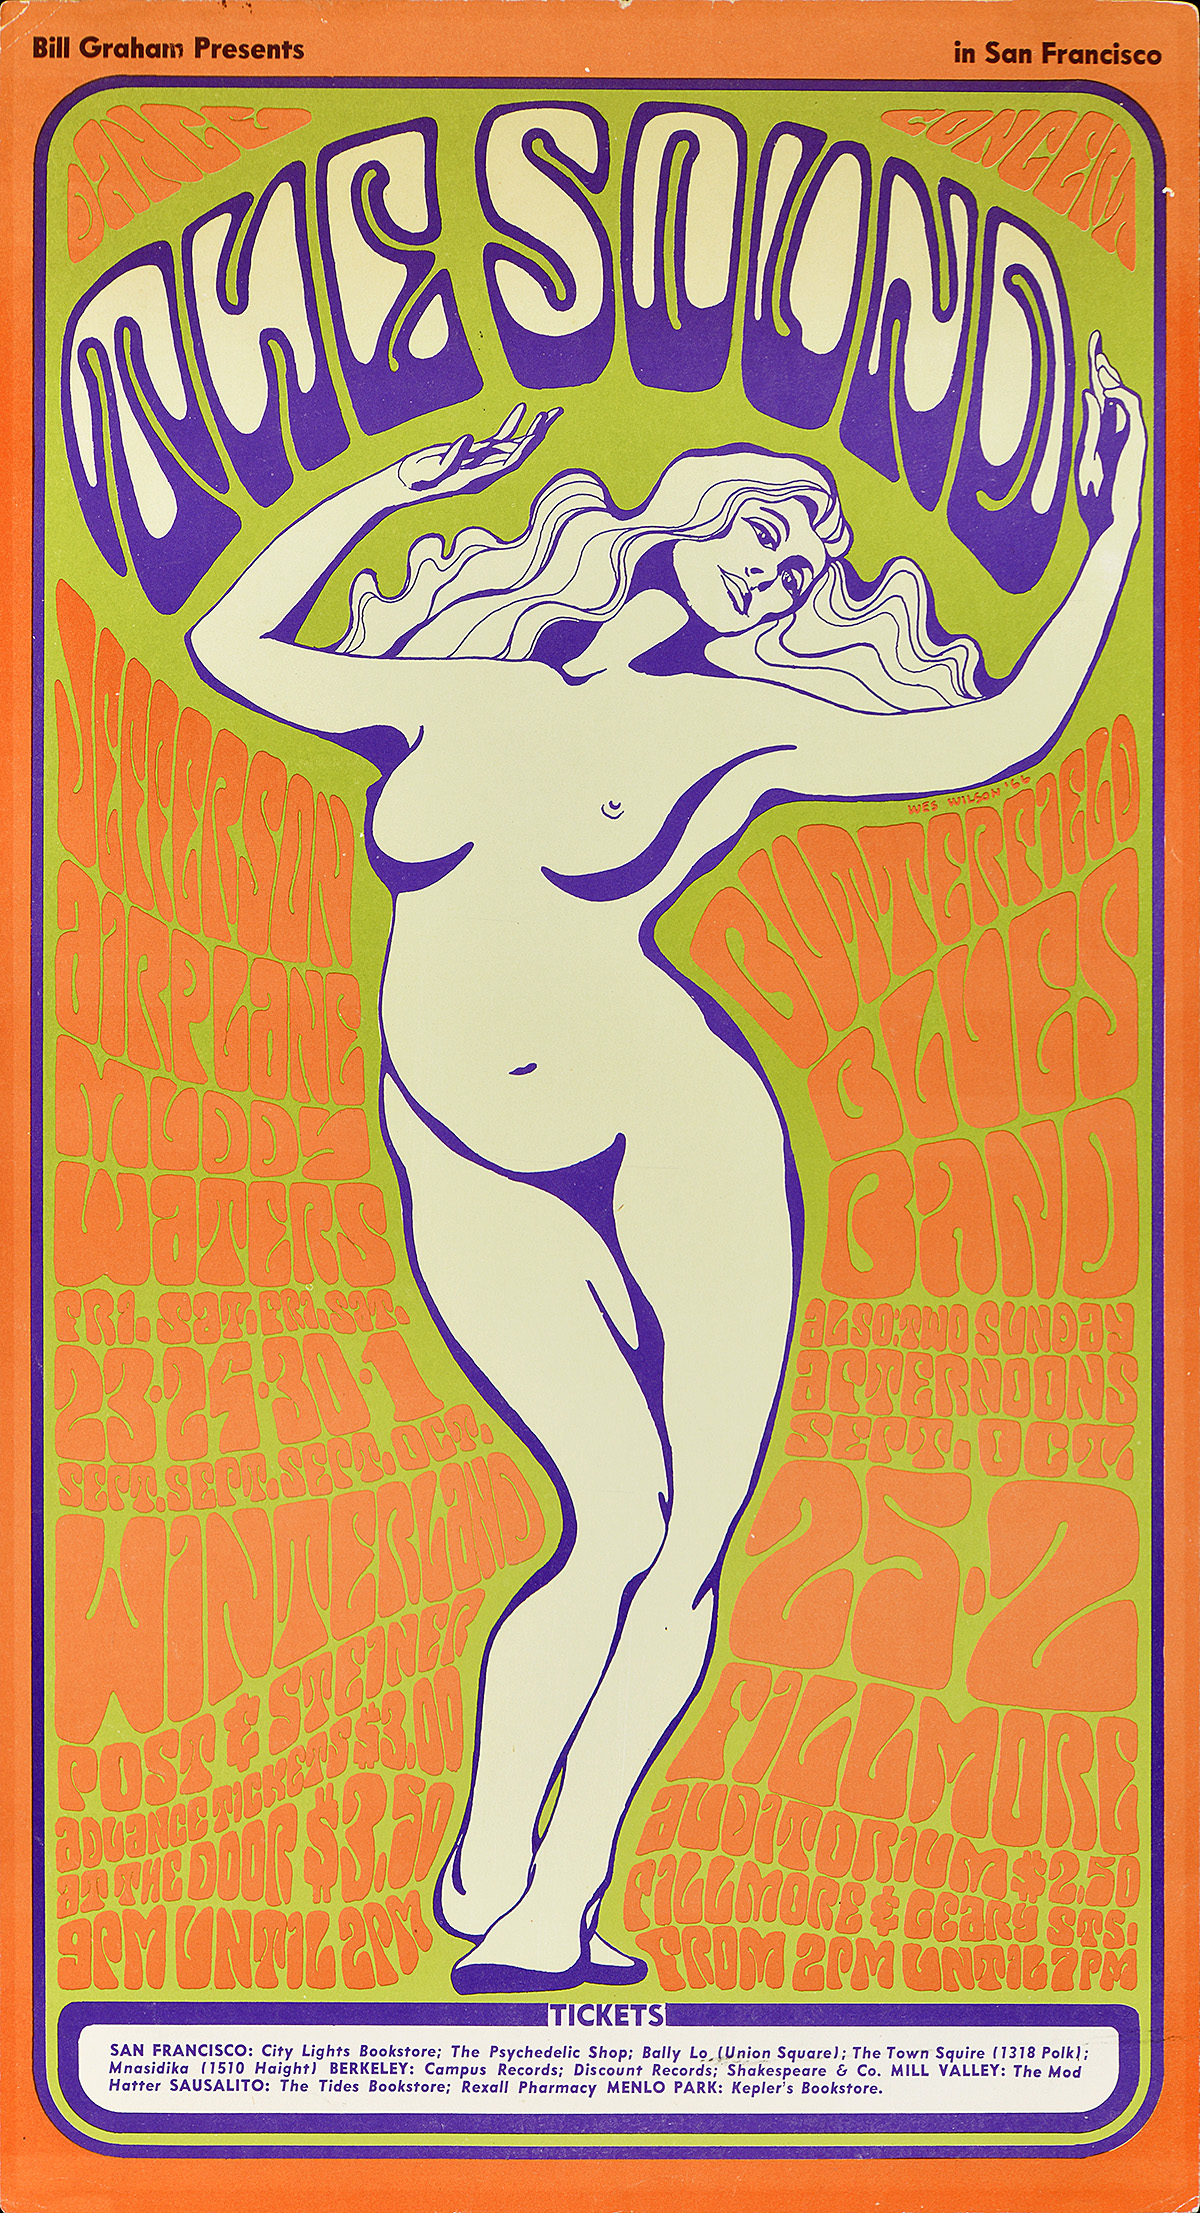 illustrational poster of a nude woman with long hair holding up the words